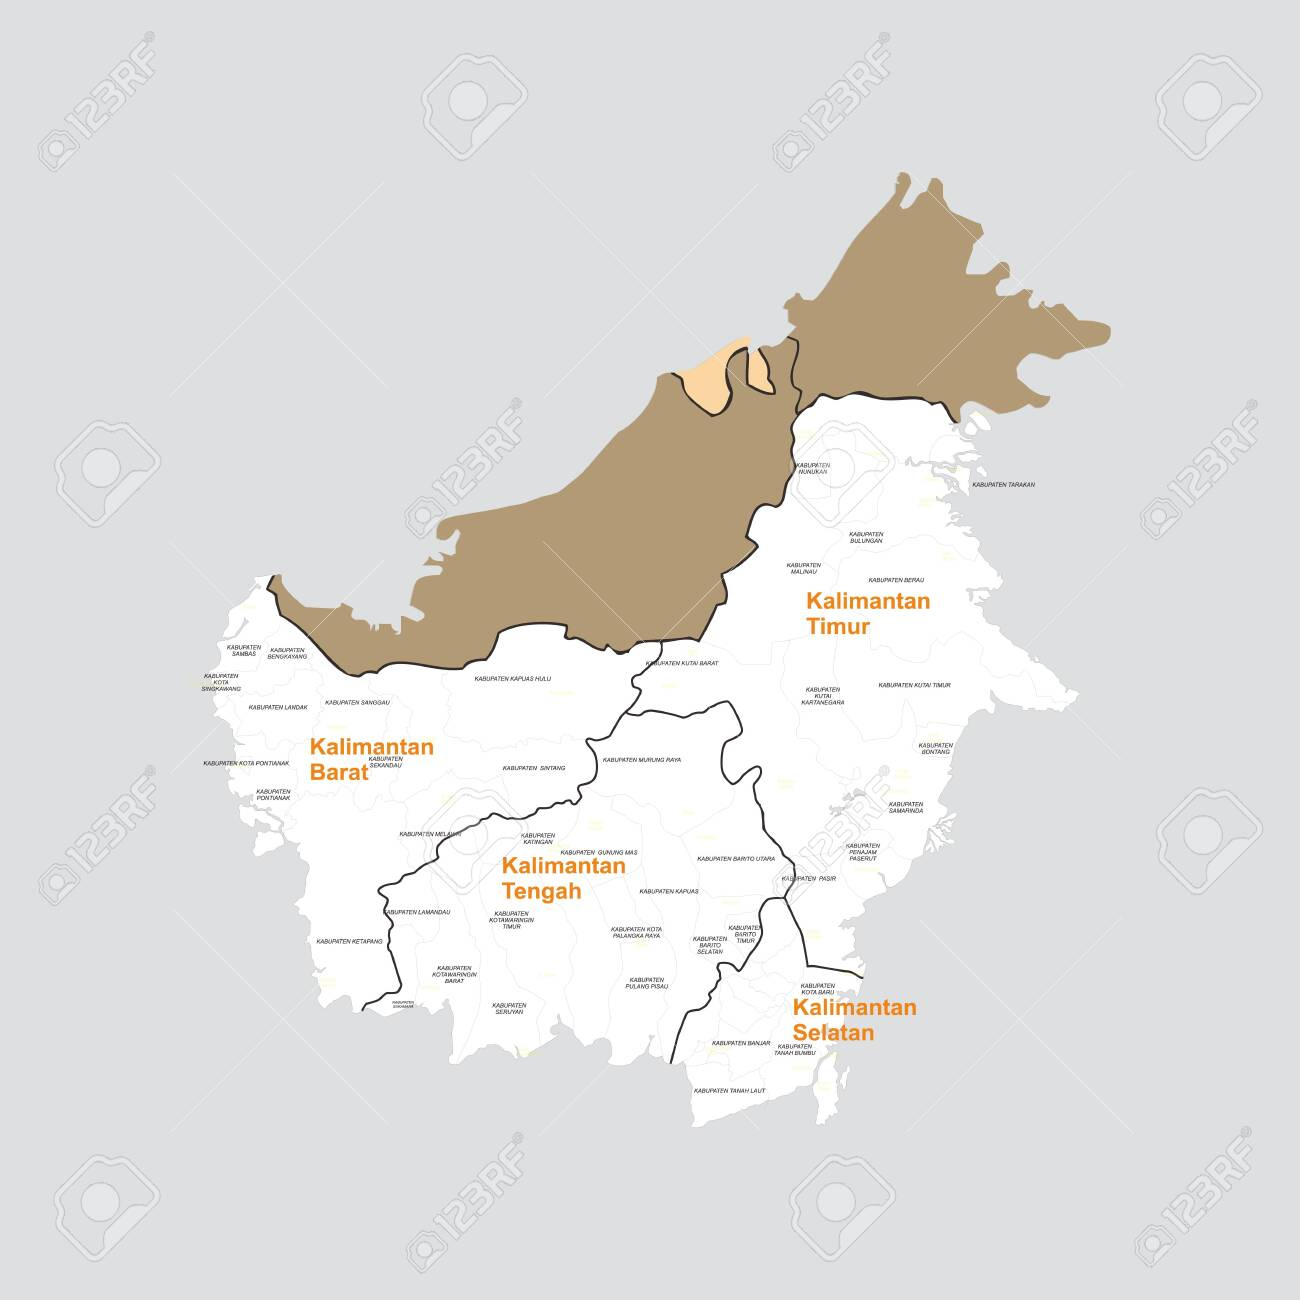 Image of: Borneo Kalimantan Big Island Maps Royalty Free Cliparts Vectors And Stock Illustration Image 136291865